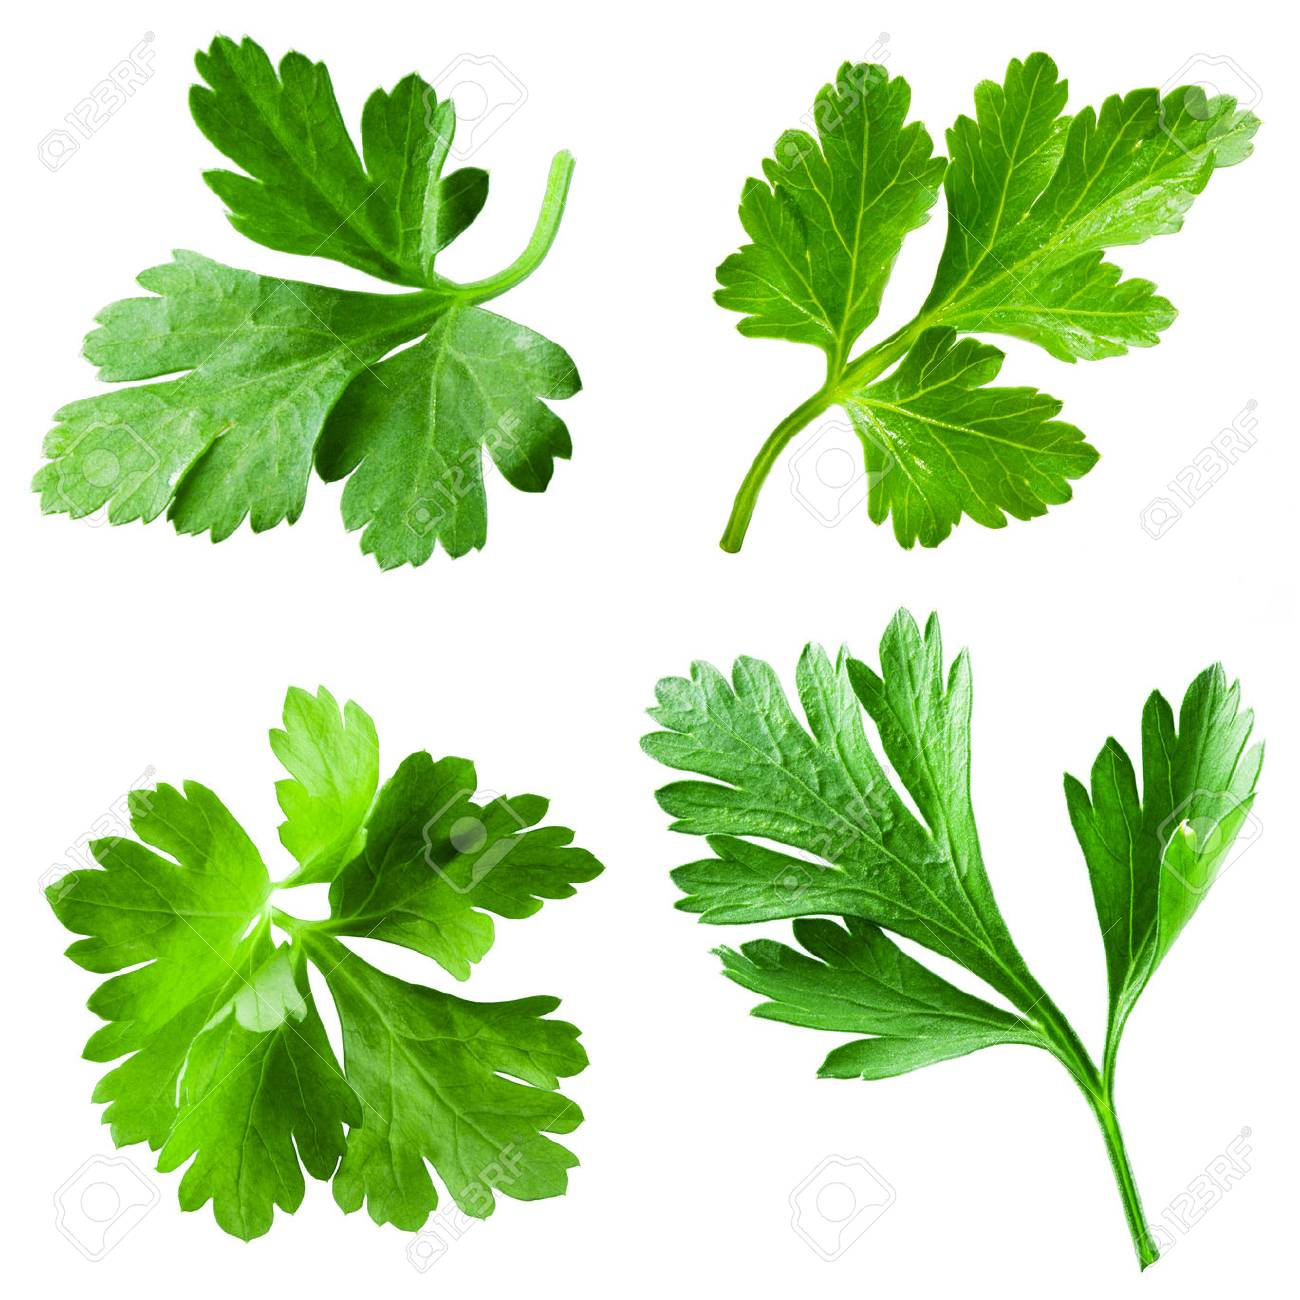 Parsley isolated on white background. Collection - 57052204